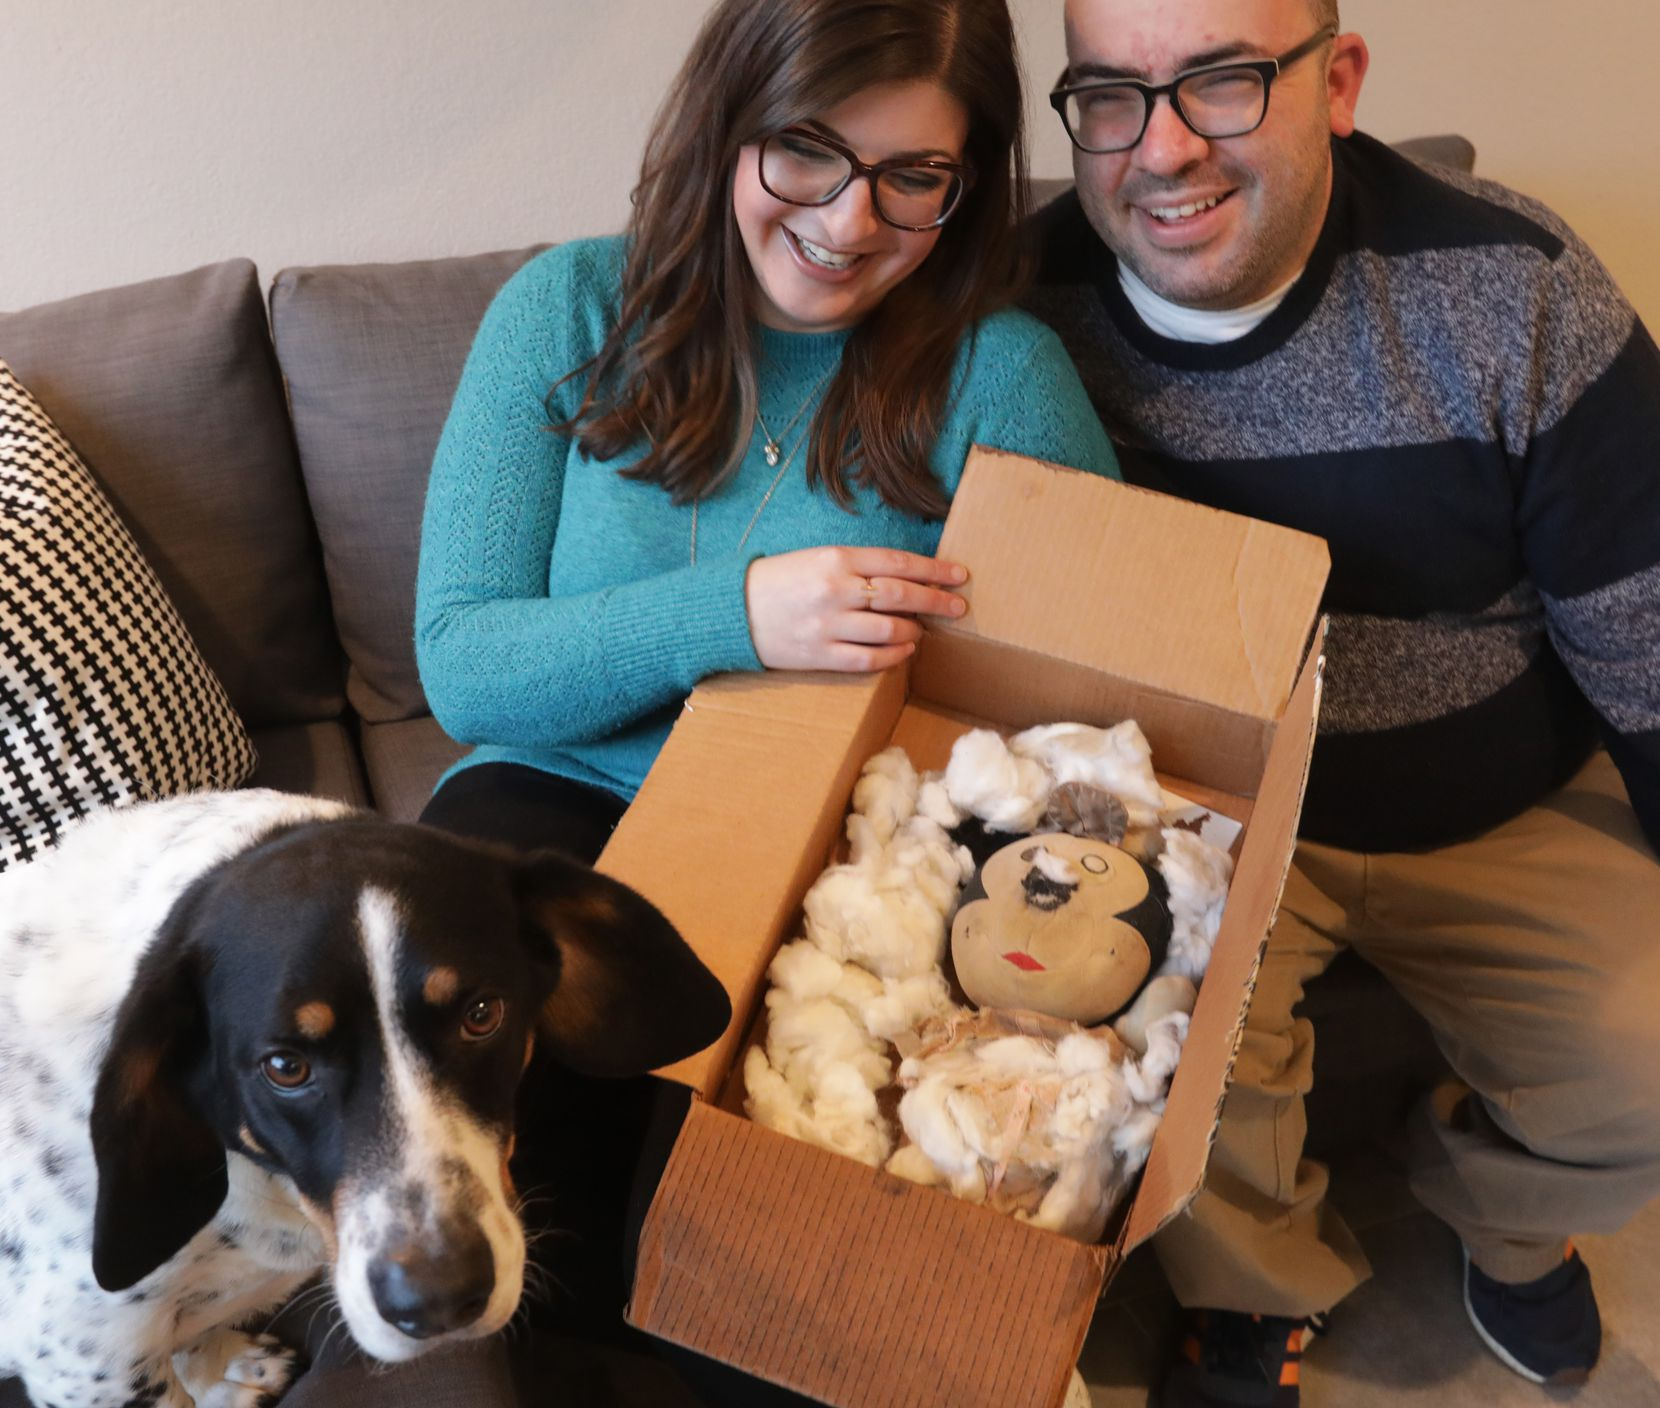 Leslie and Eli Cohn-Wein have recovered Leslie's childhood Minnie Mouse toy, which came out on the losing end of a tussle with their dog, Mack.